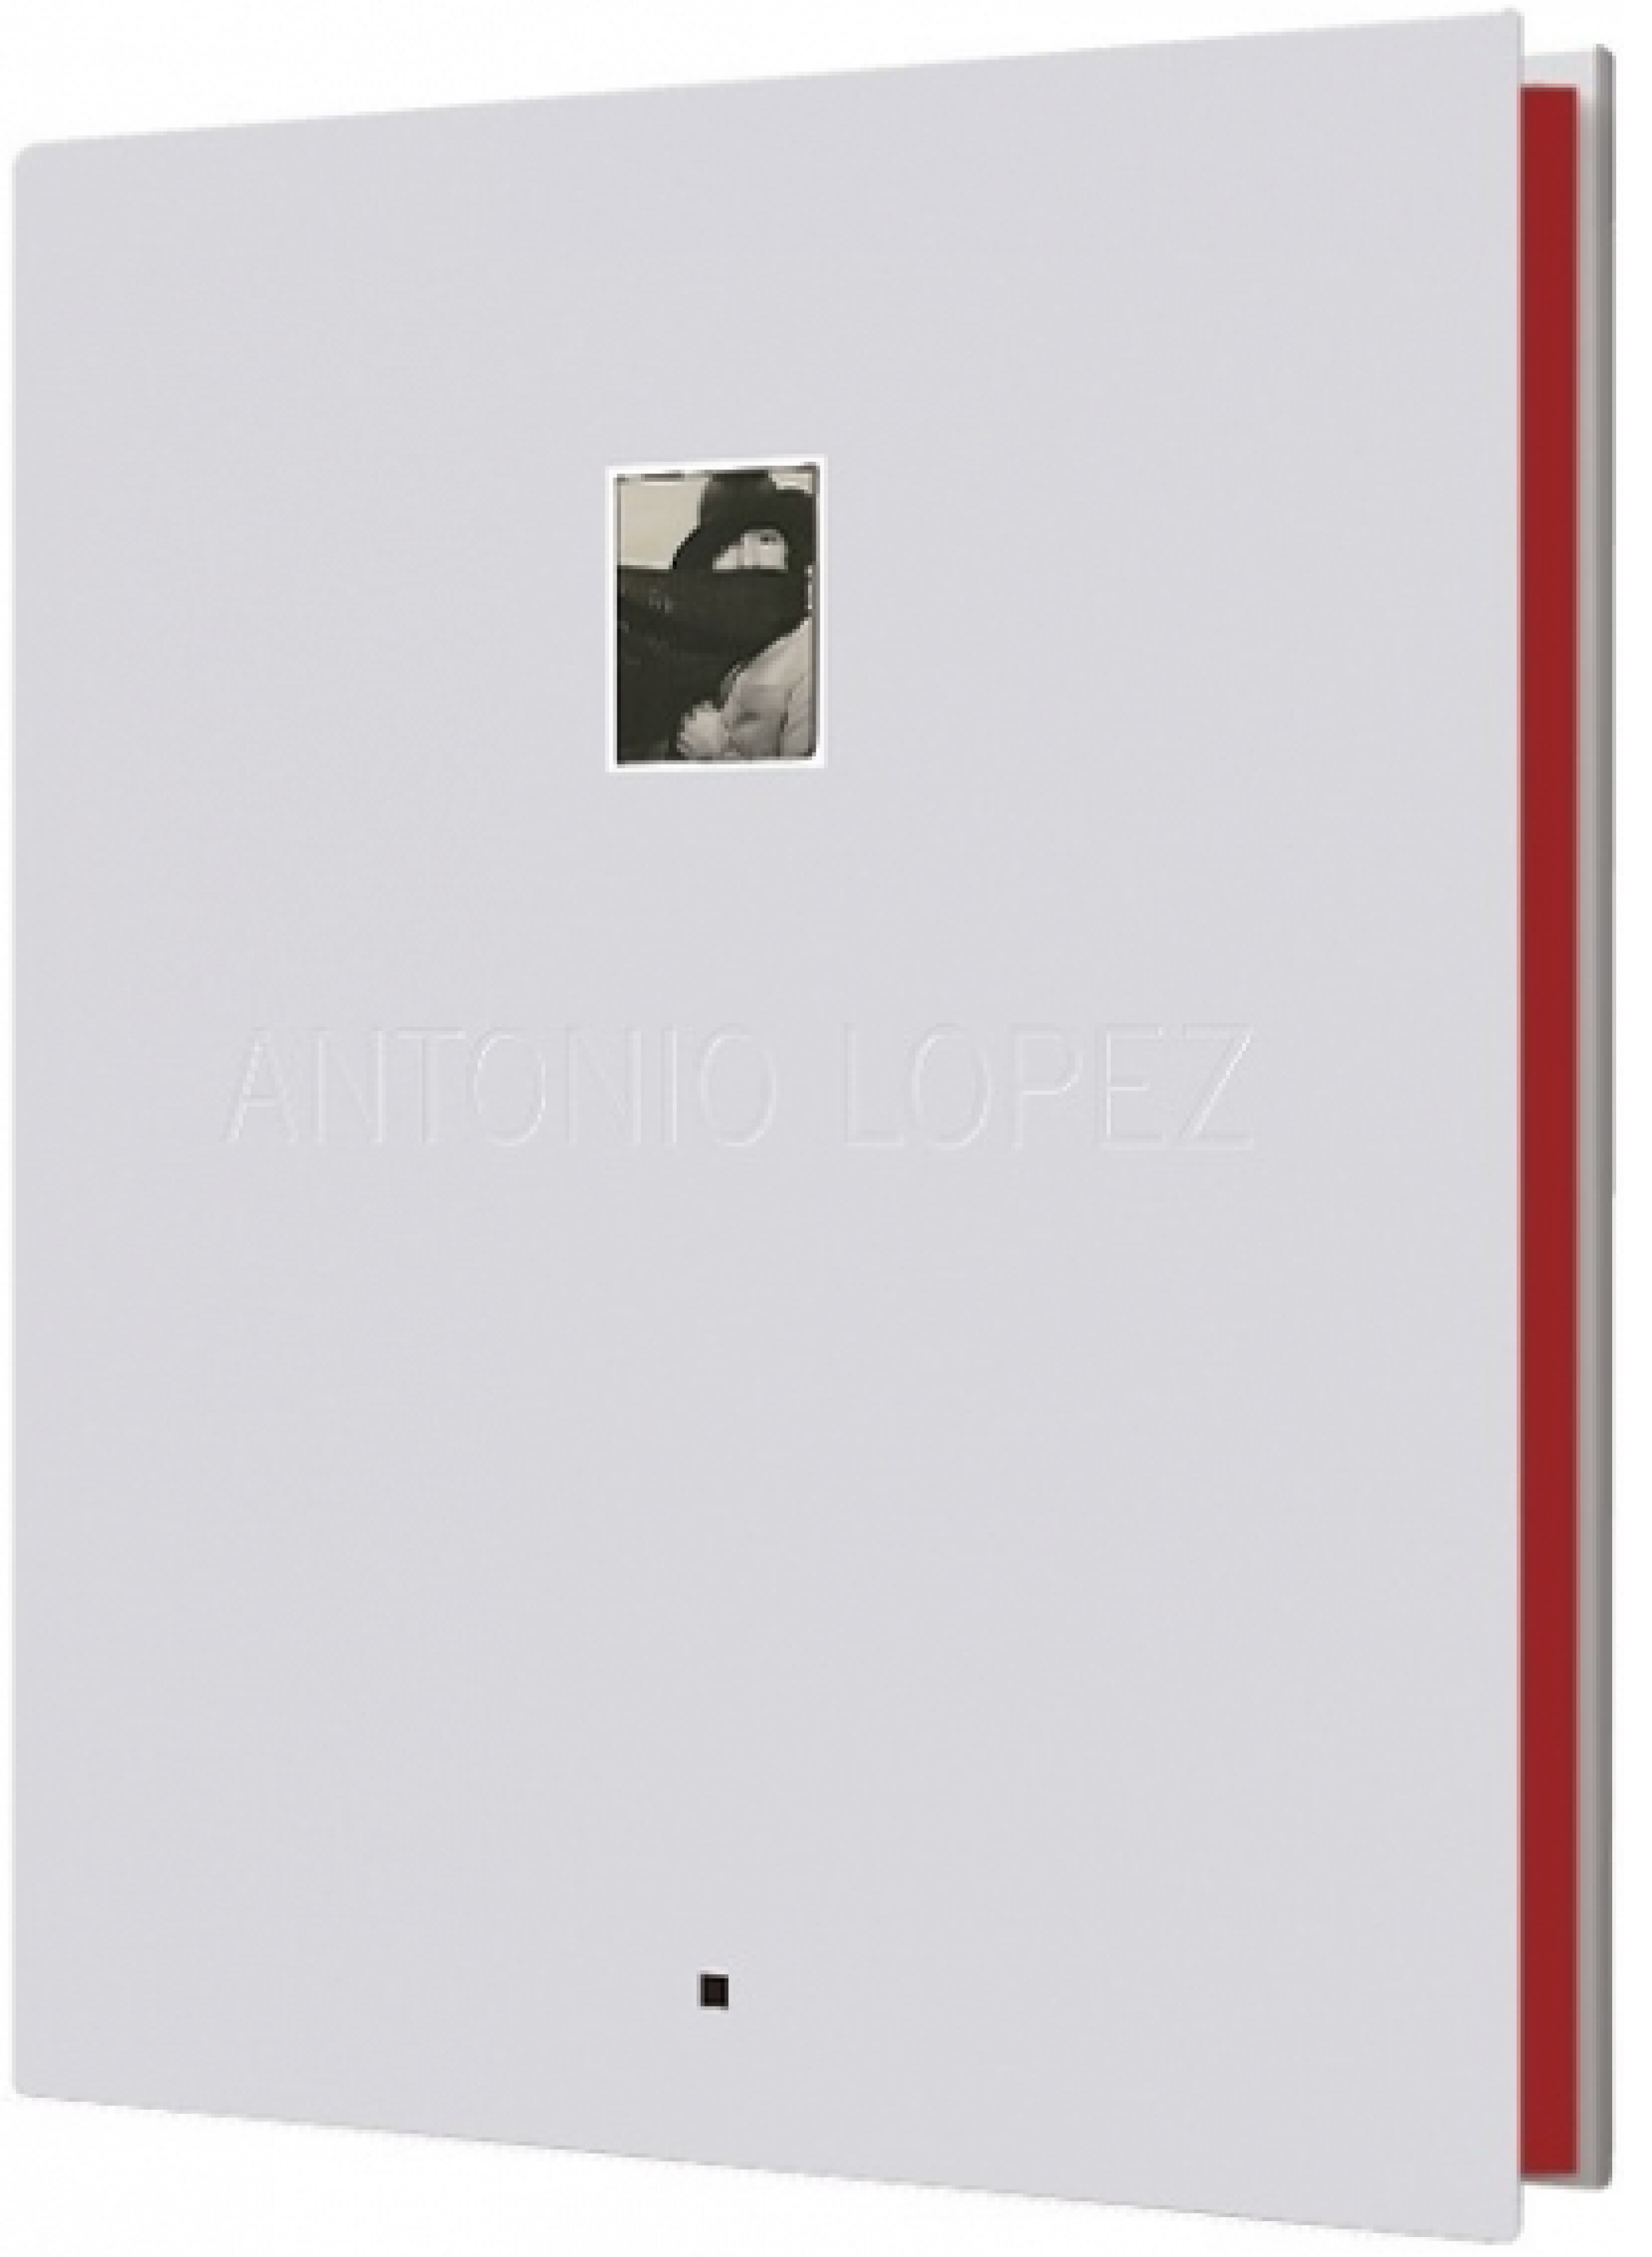 Antonio Lopez: Visionary Writing / Une écriture visionnaire